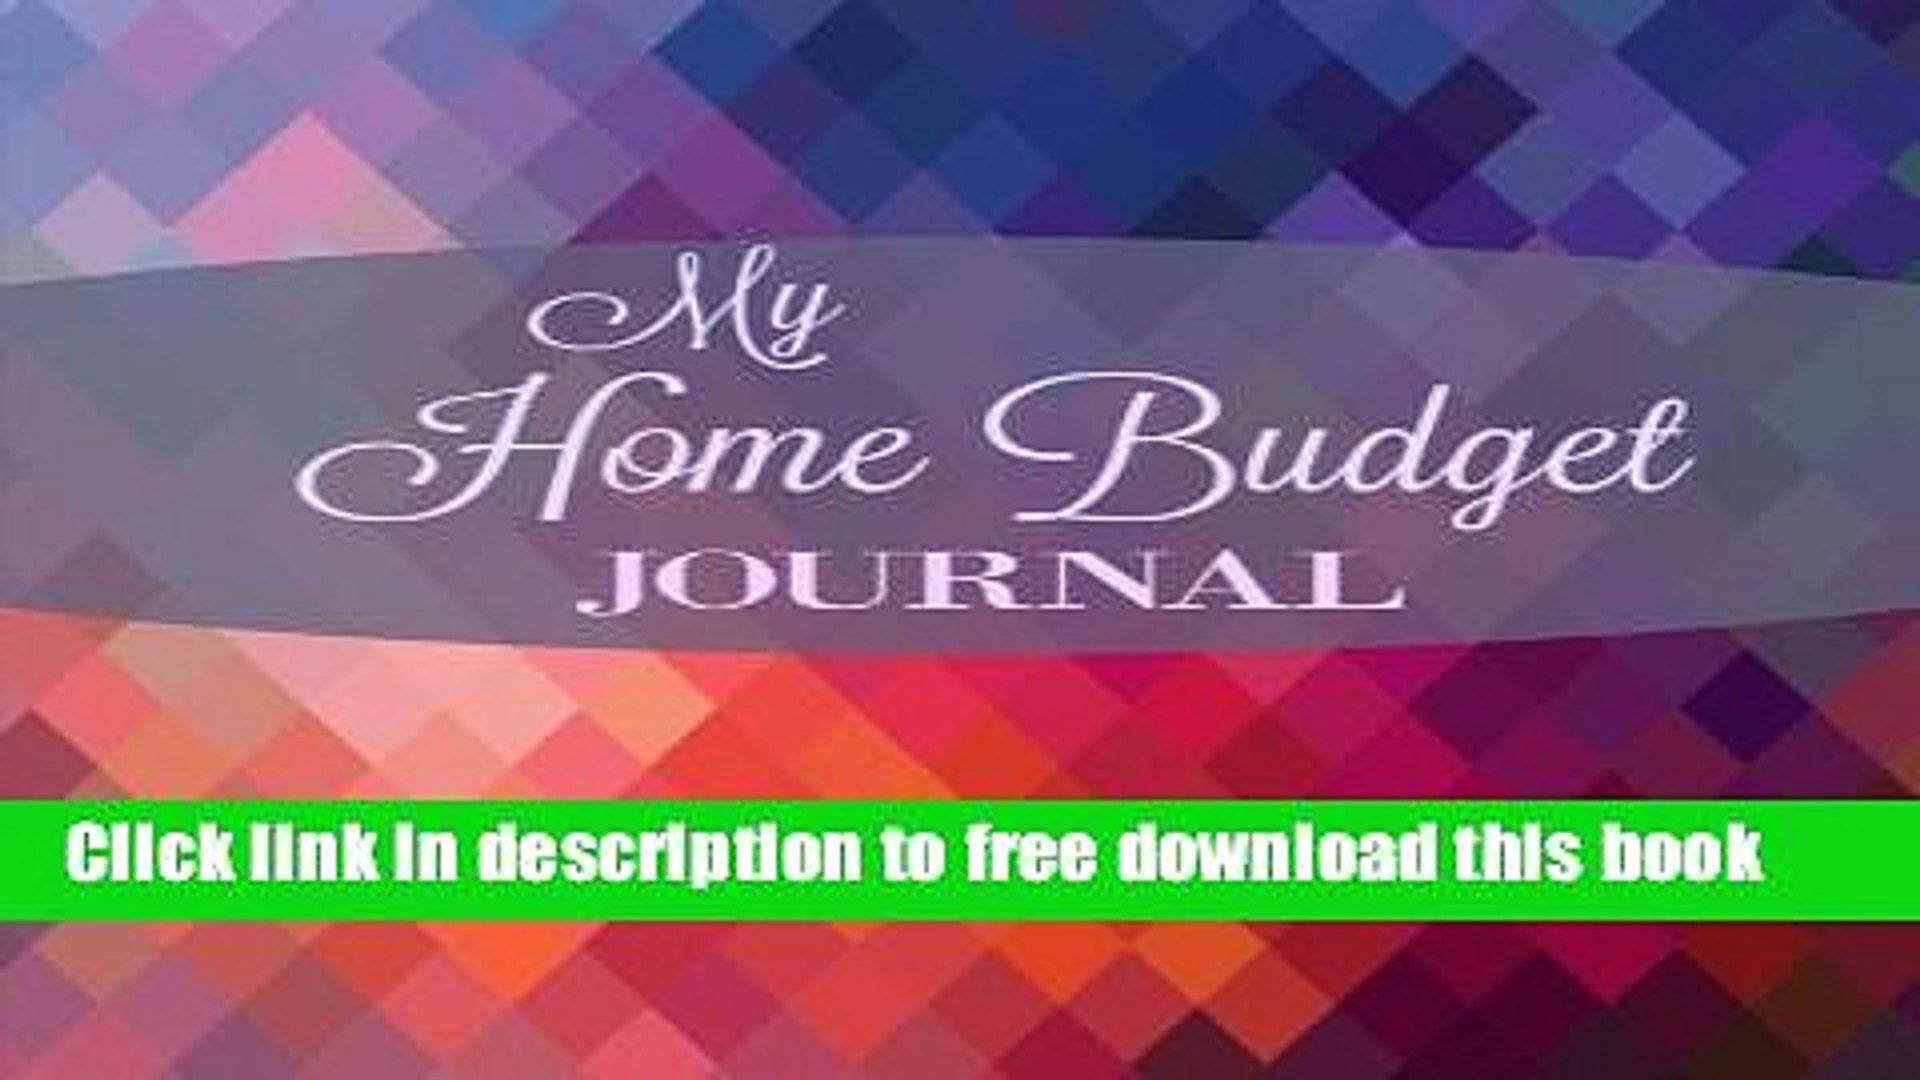 [Download] My Home Budget Journal (Extra Large Weekly Bill Planner with Note Pages and Goal